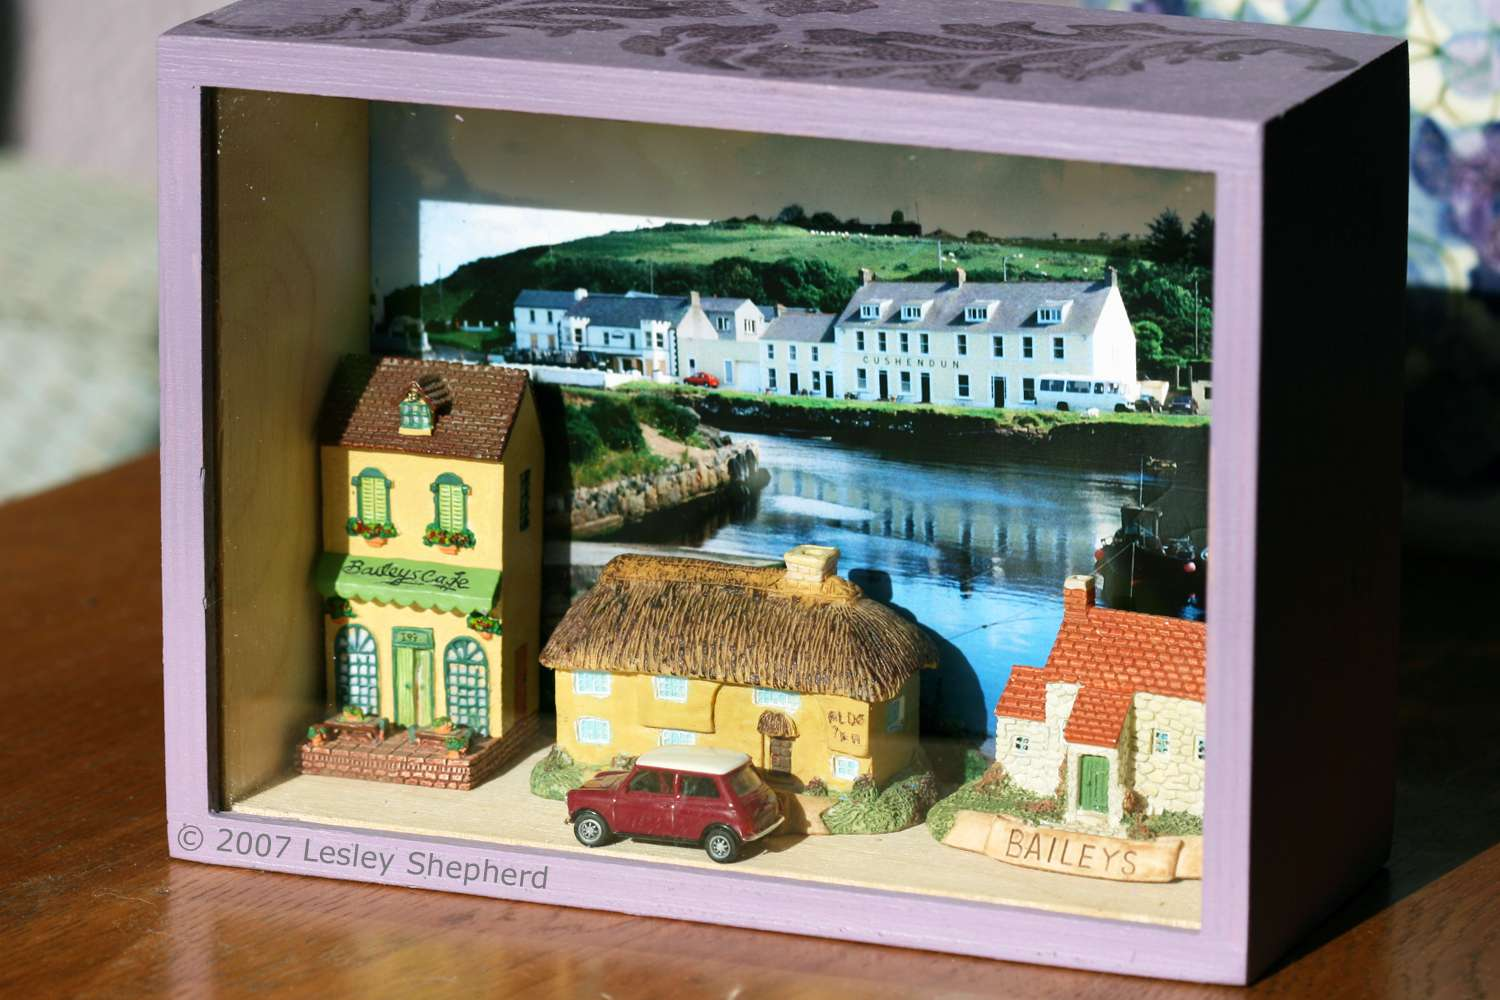 Display box with a collection of miniature Irish cottages against a photo backdrop